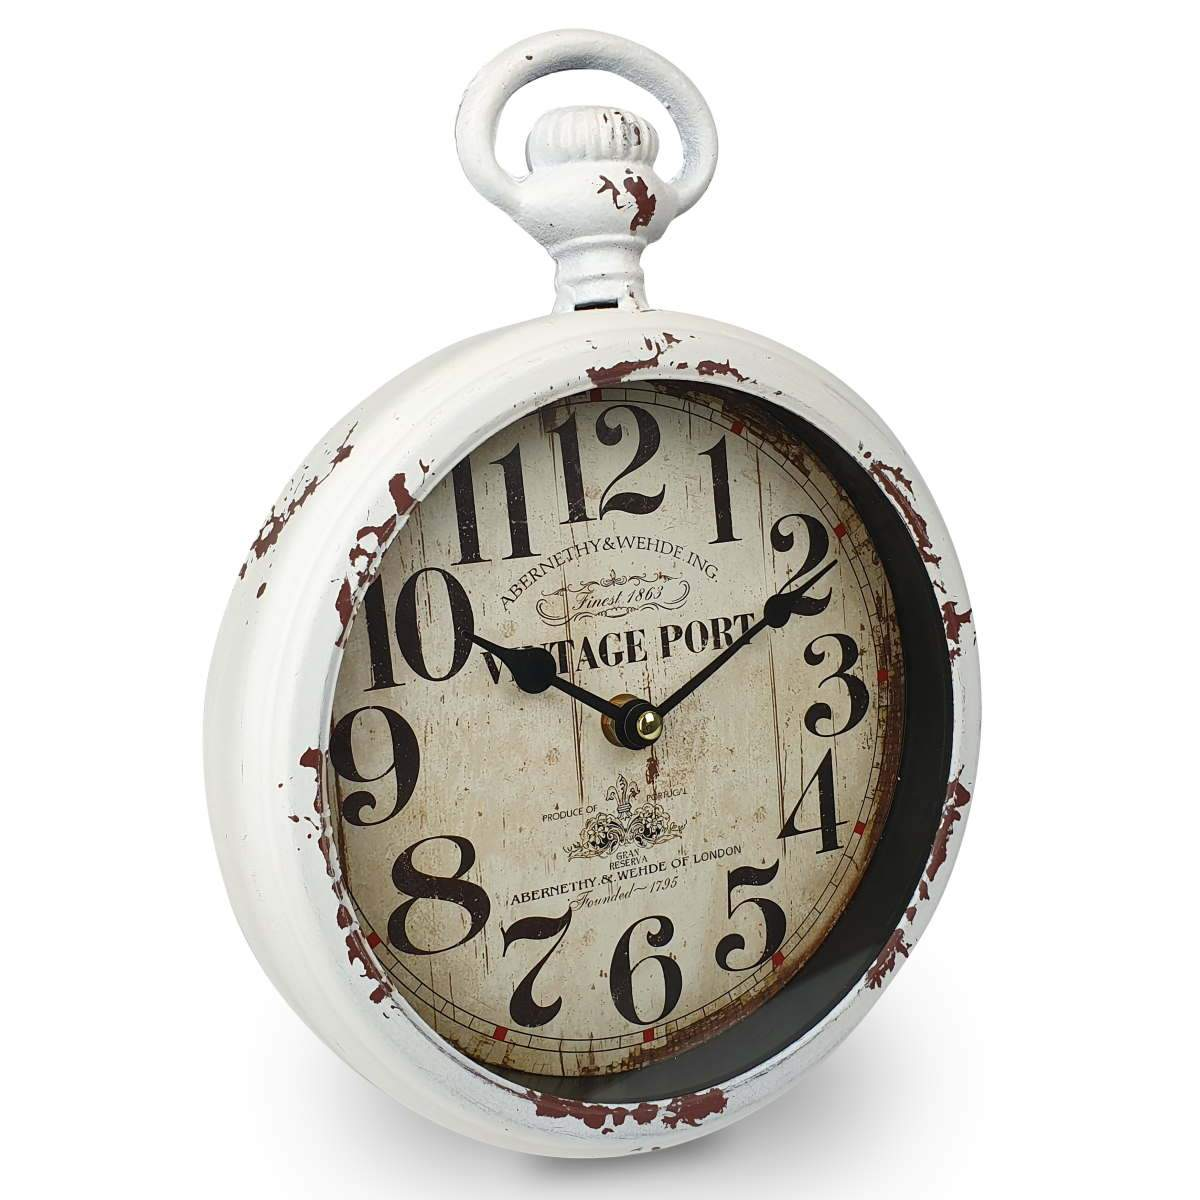 Victory Vintage Port FOB Watch Distressed Metal Wall Clock White 28cm CHH 233 1